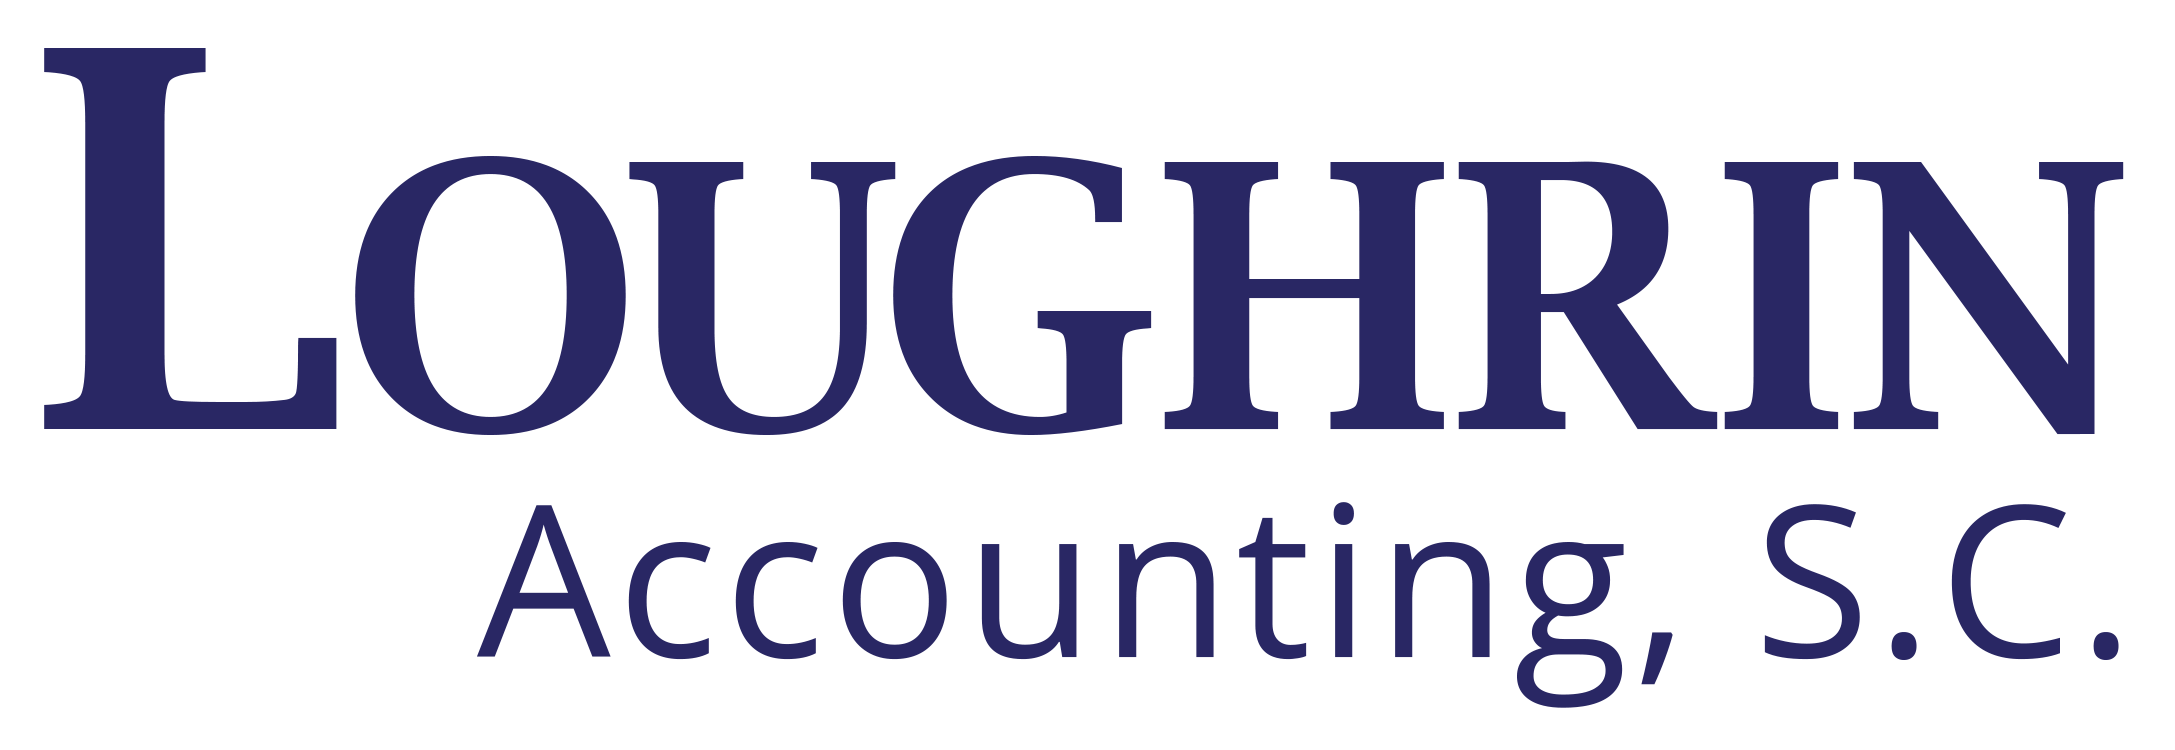 Loughrin Accounting, S.C. | IRS Tax Forms and Publications Page